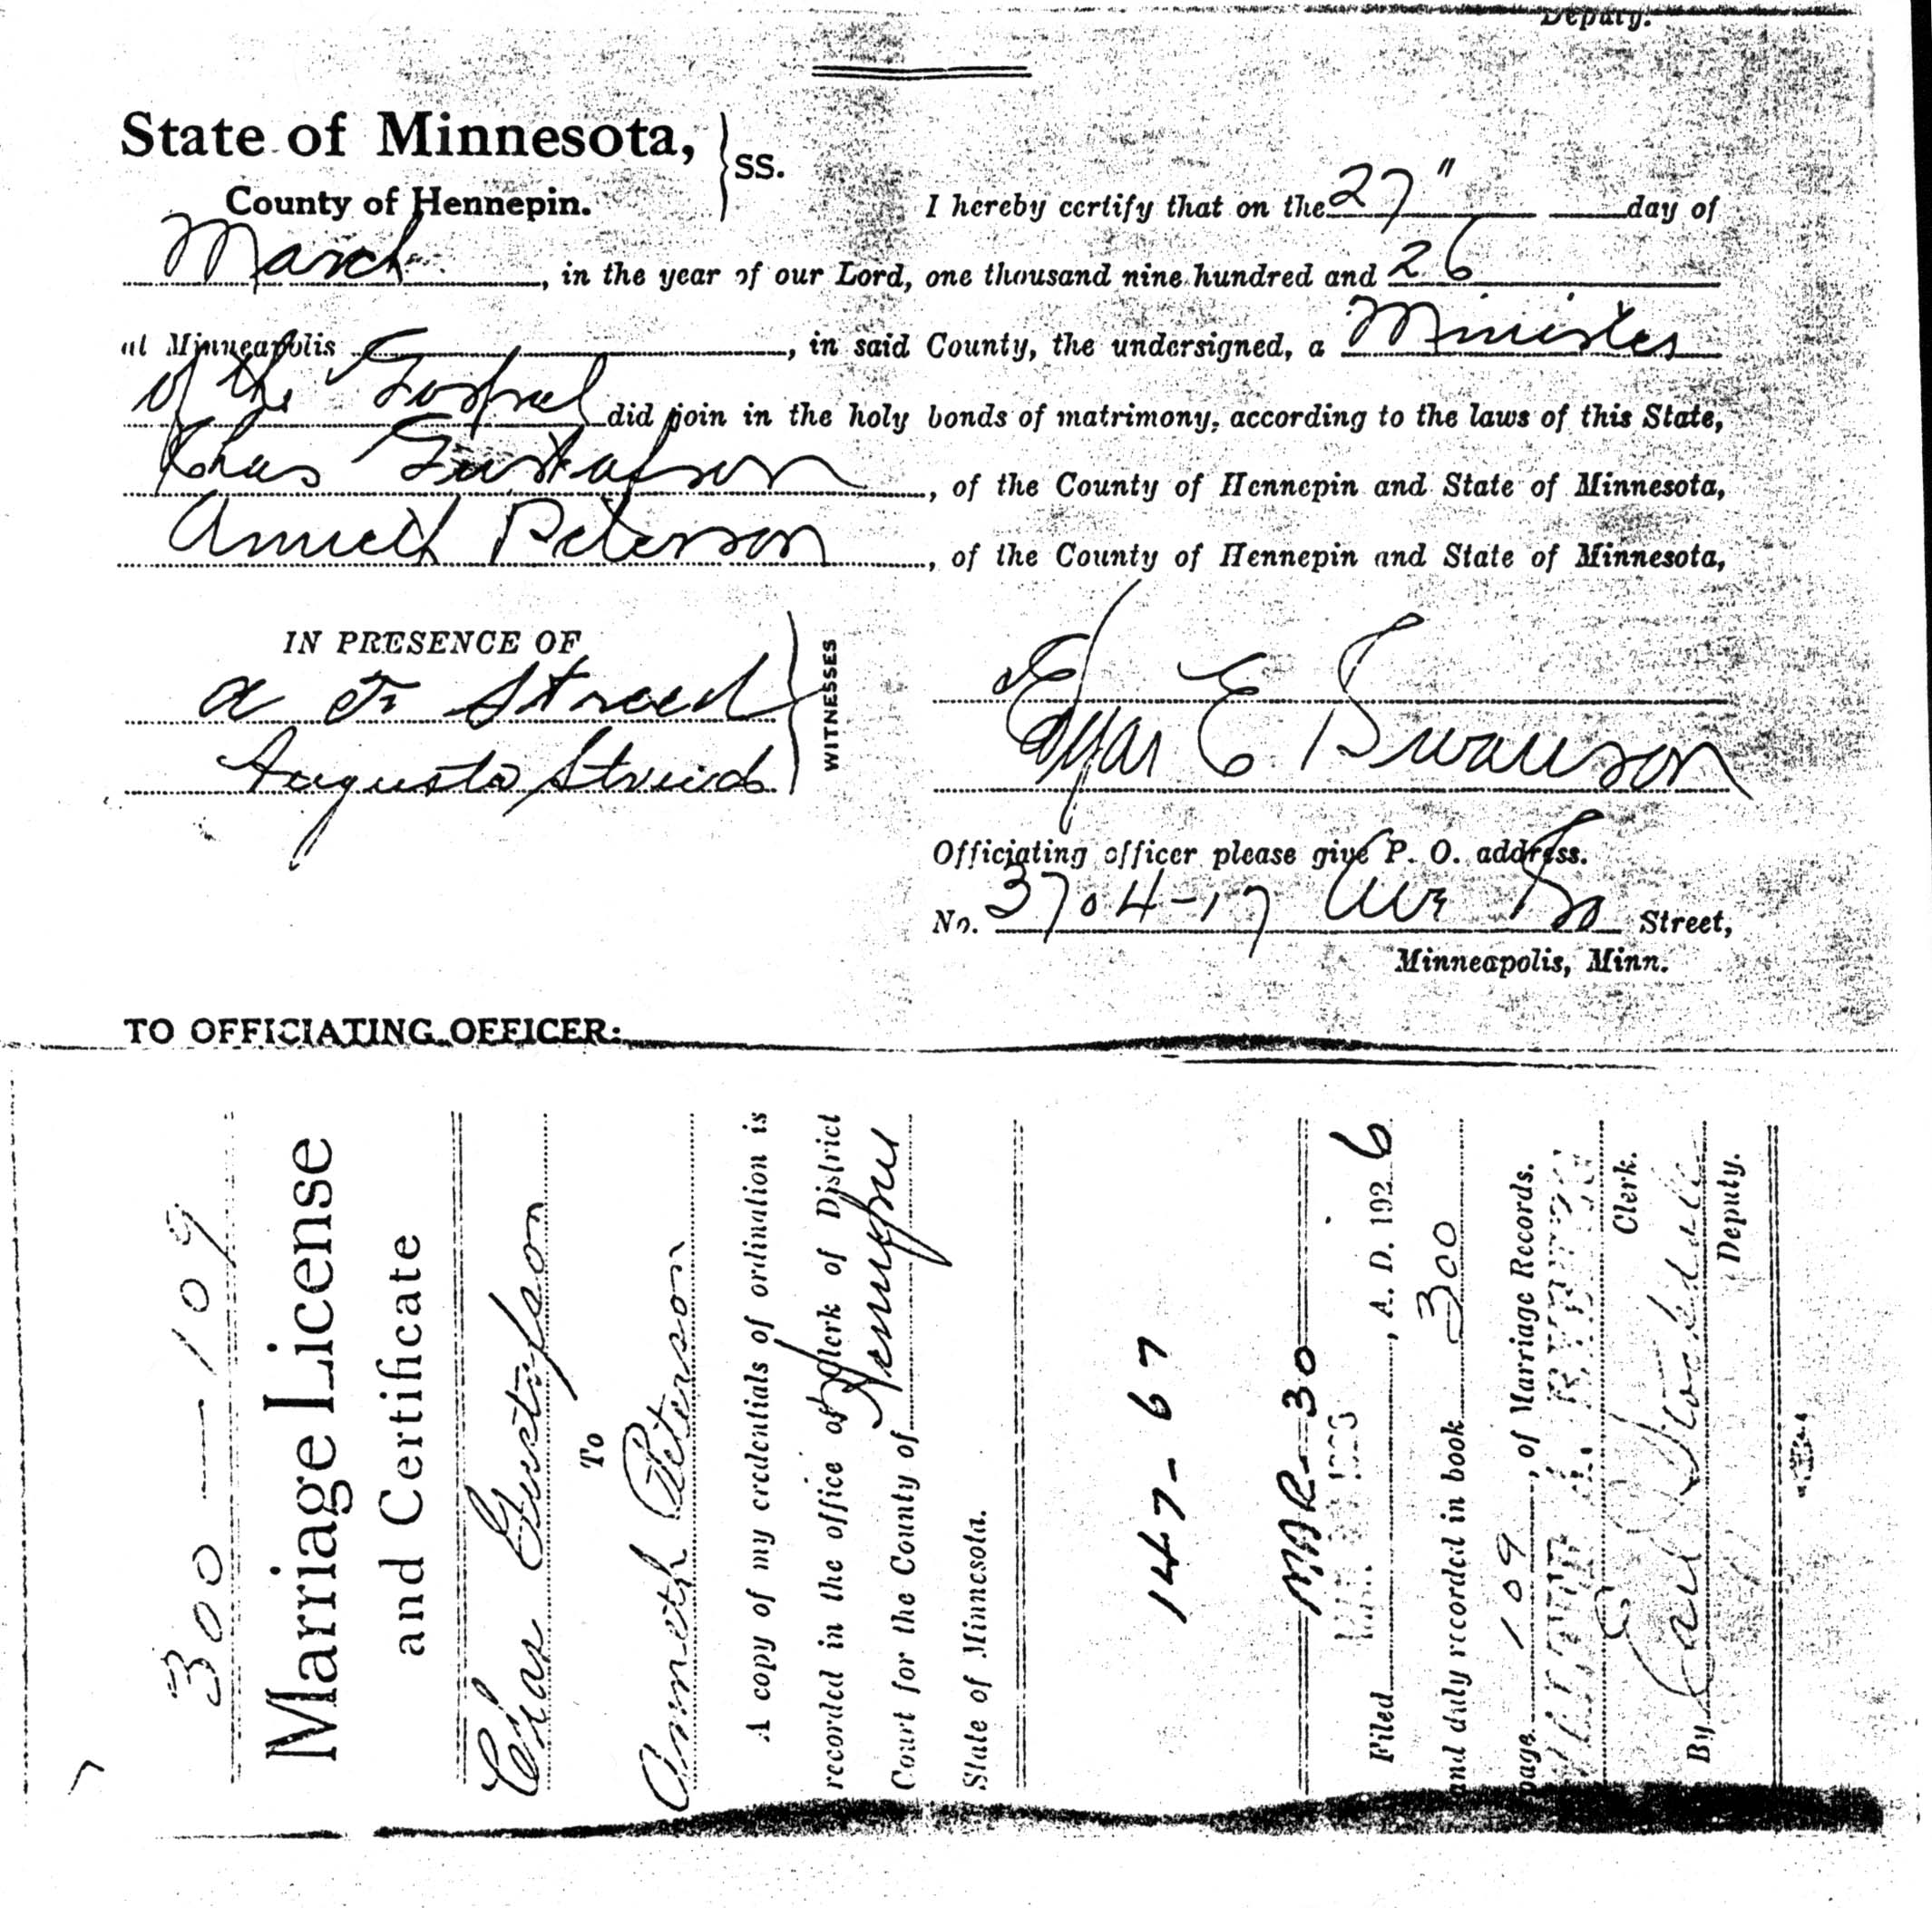 Fresh photos of mn birth certificate business cards and resume sources from mn birth certificate image source bwchristopher aiddatafo Choice Image